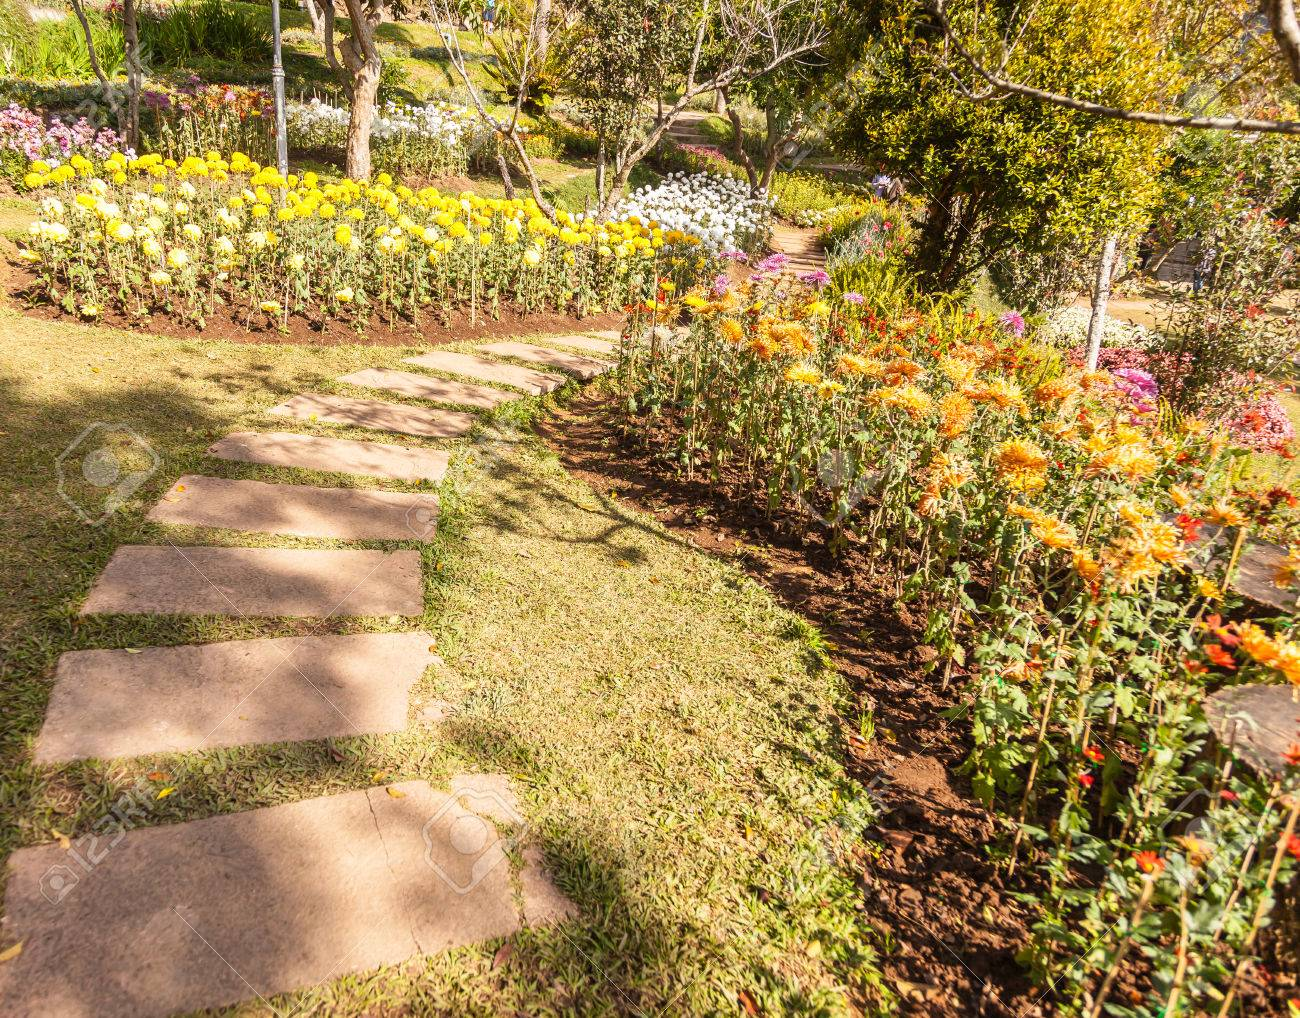 Stone Path Winding In Spring Flower Garden With Blossoming Flowers ...